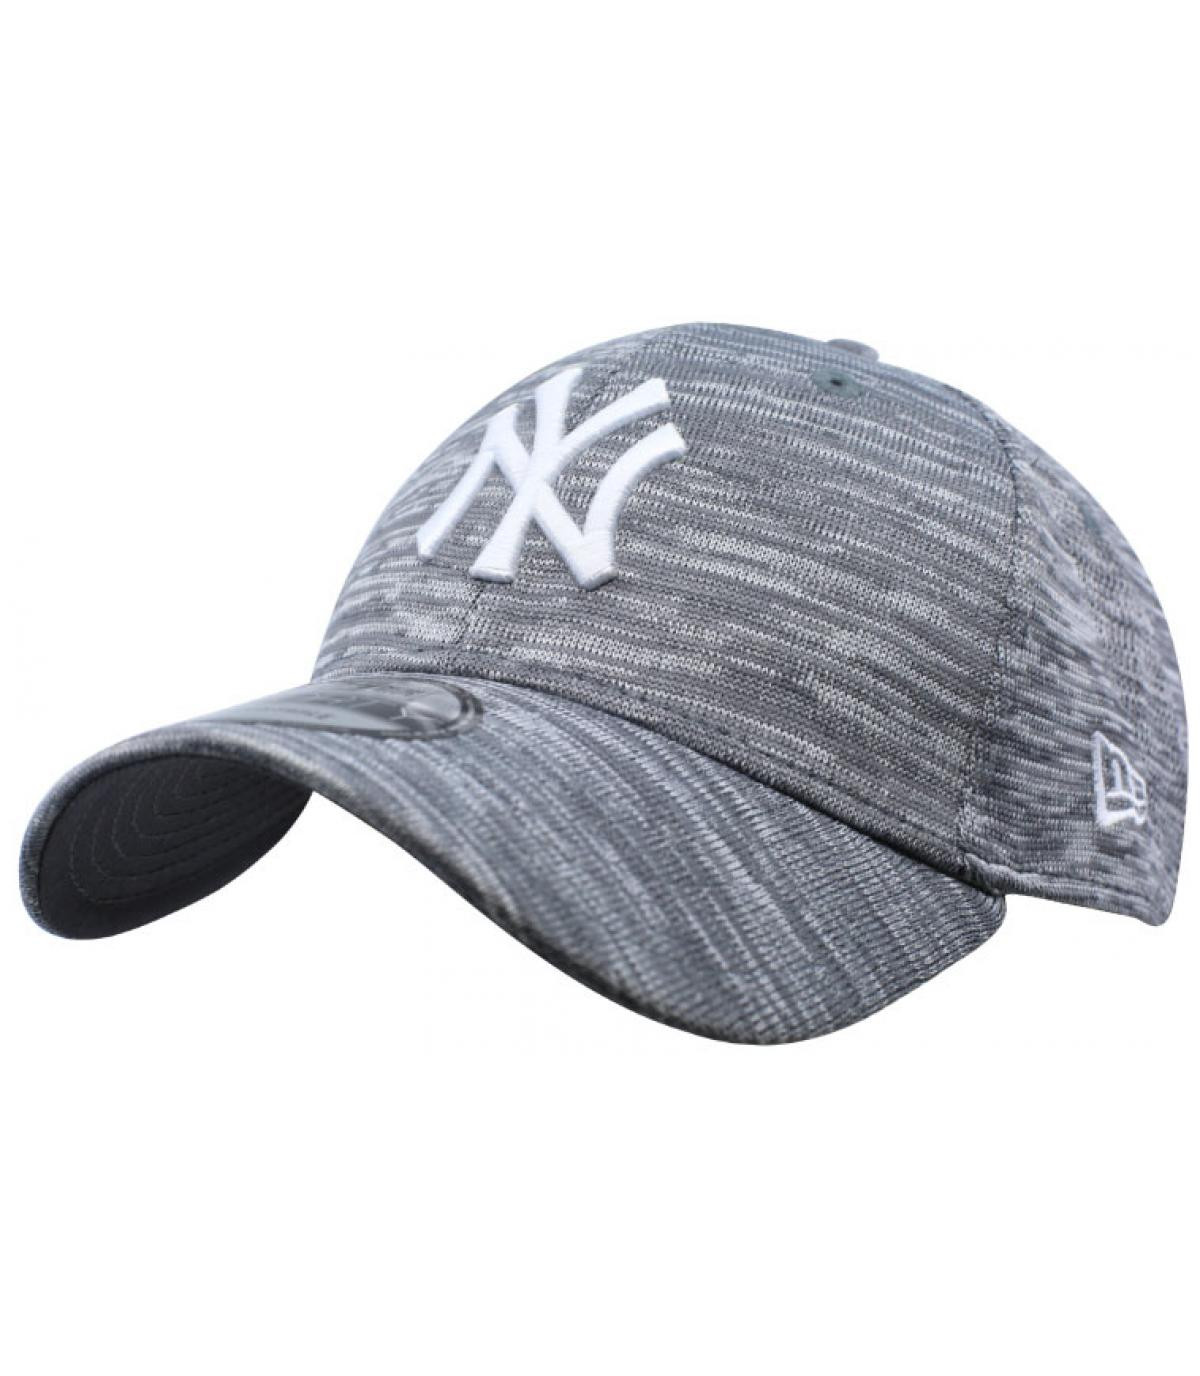 Détails Engineered Fit NY 9Forty graphite - image 2